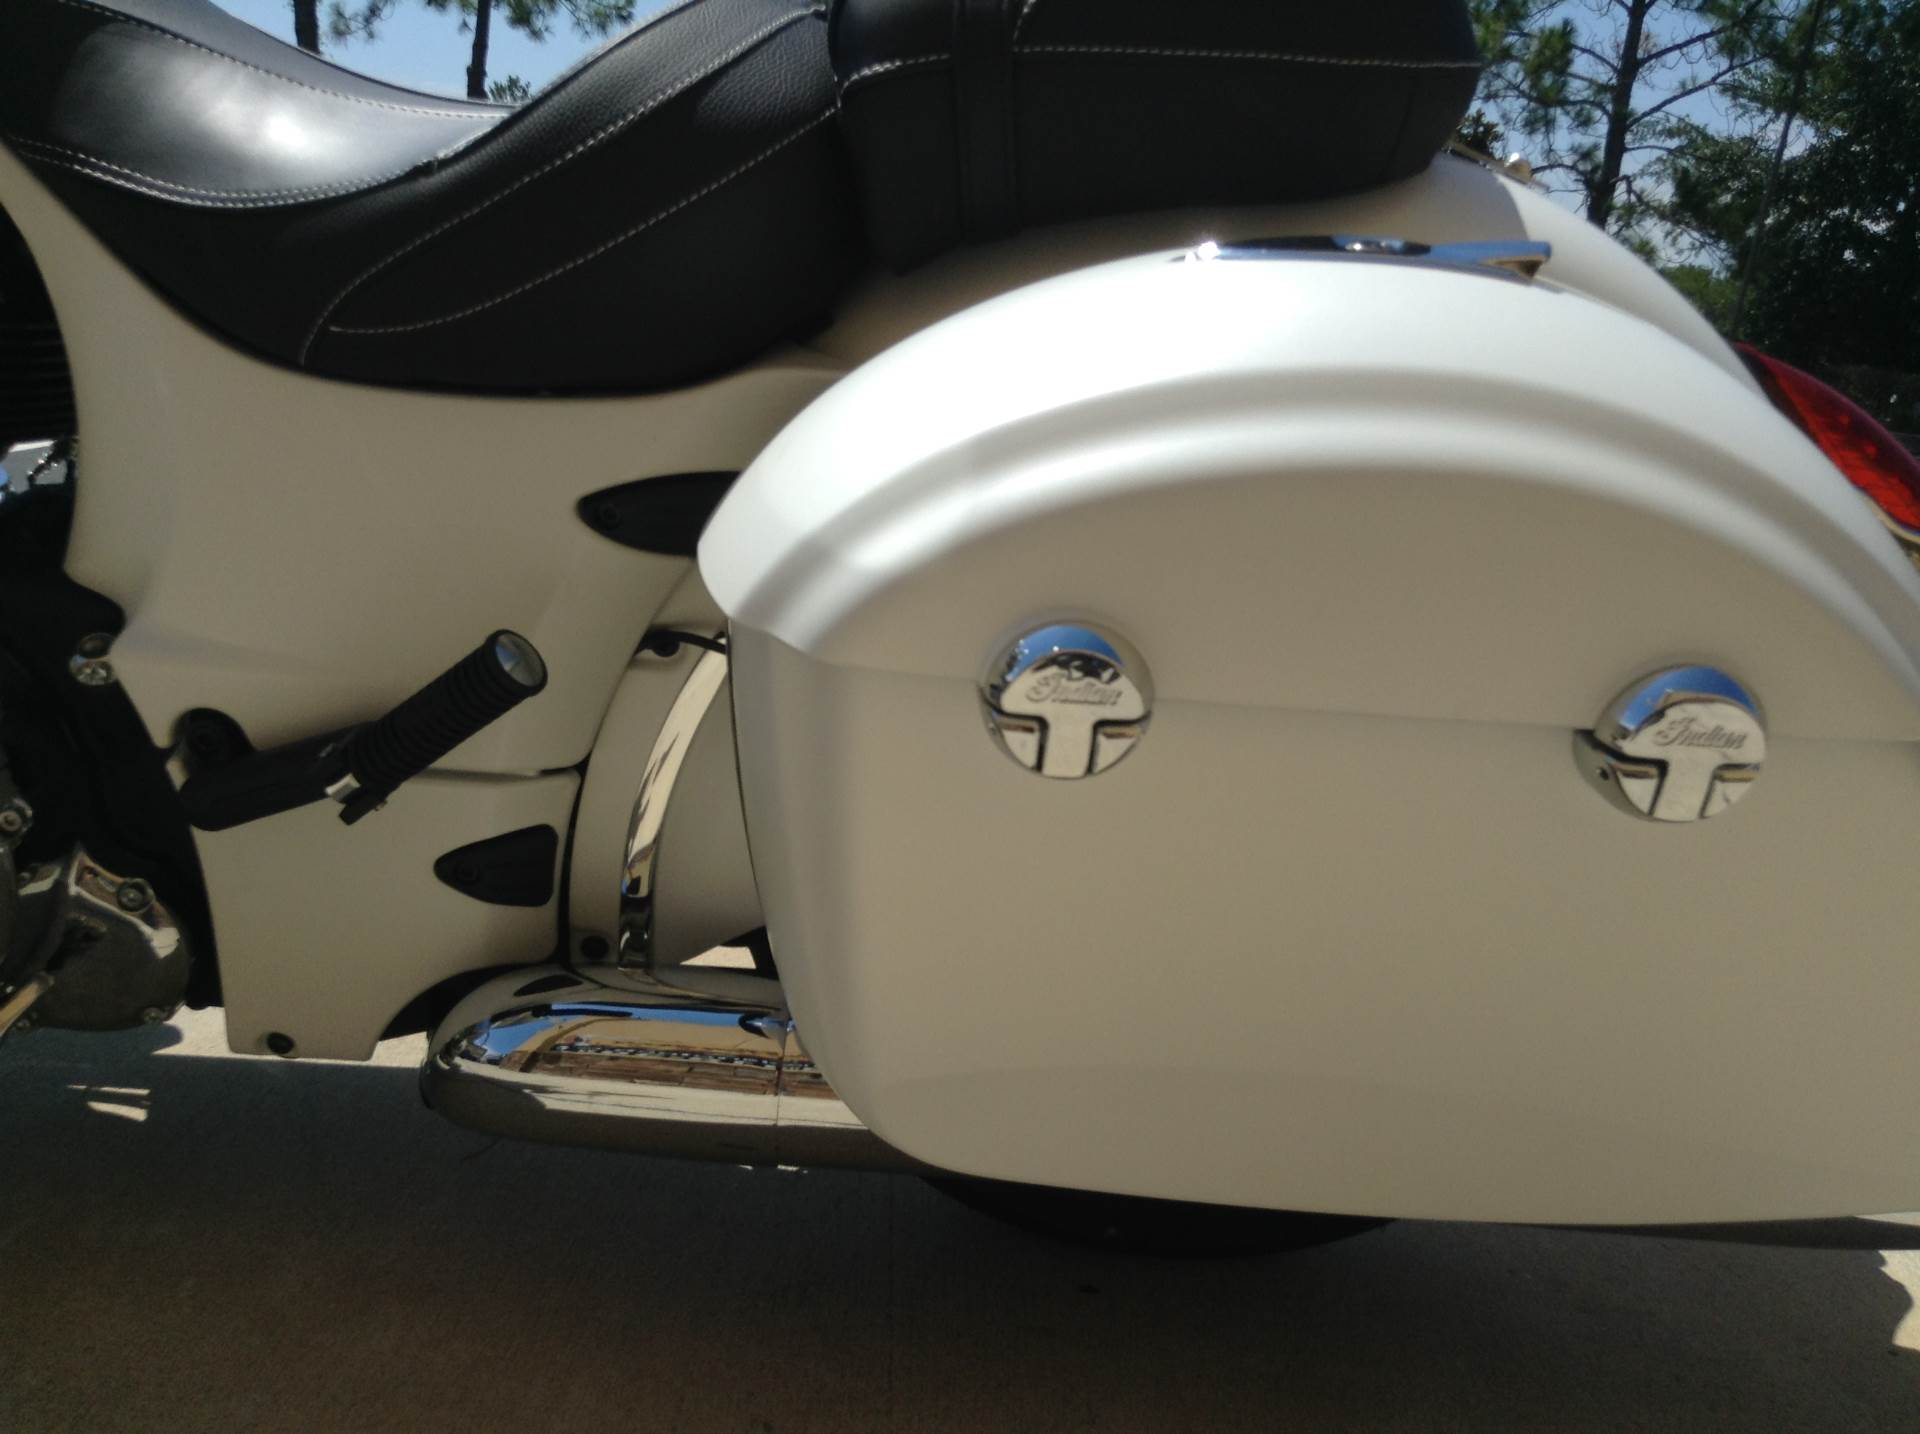 2017 Indian CHIEFTAIN LIMITED in Panama City Beach, Florida